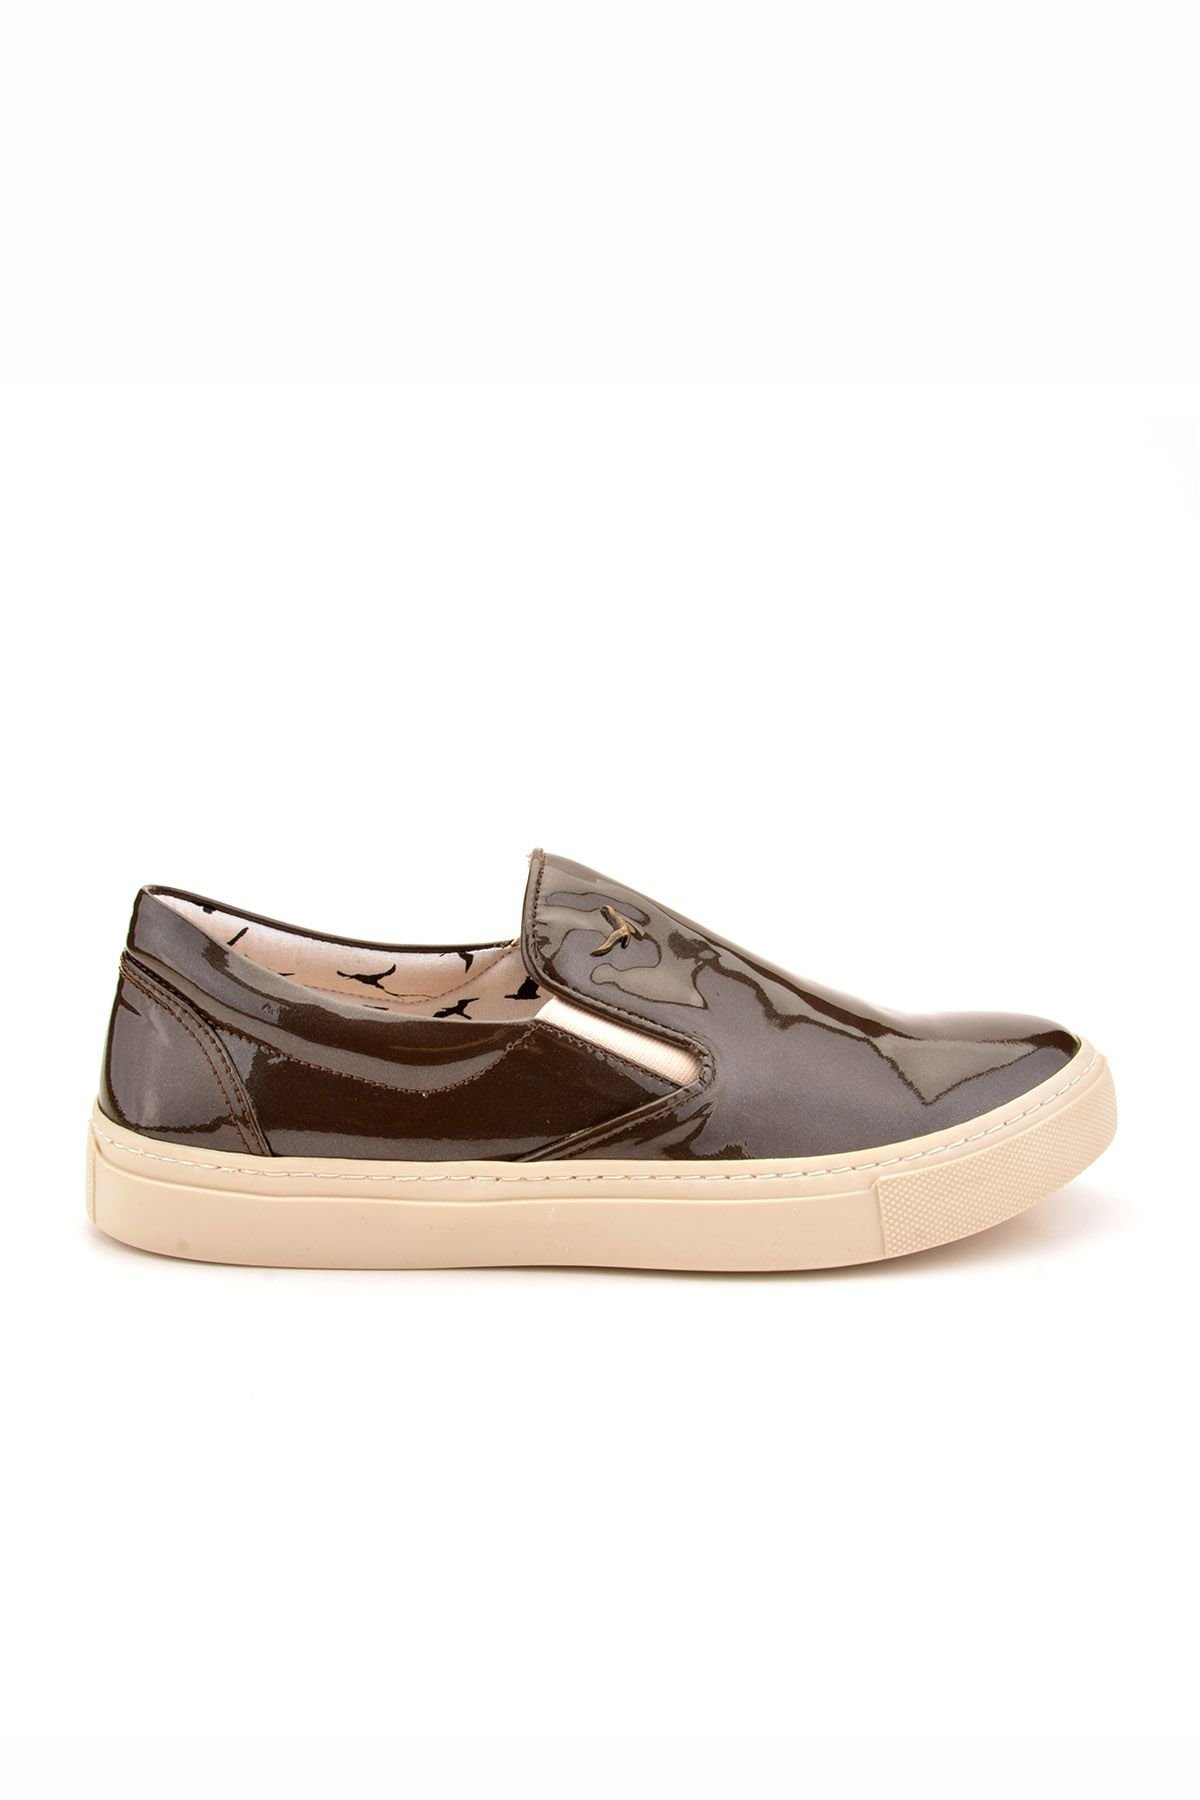 Art Goya Women Sneakers From Polished Leather Gray